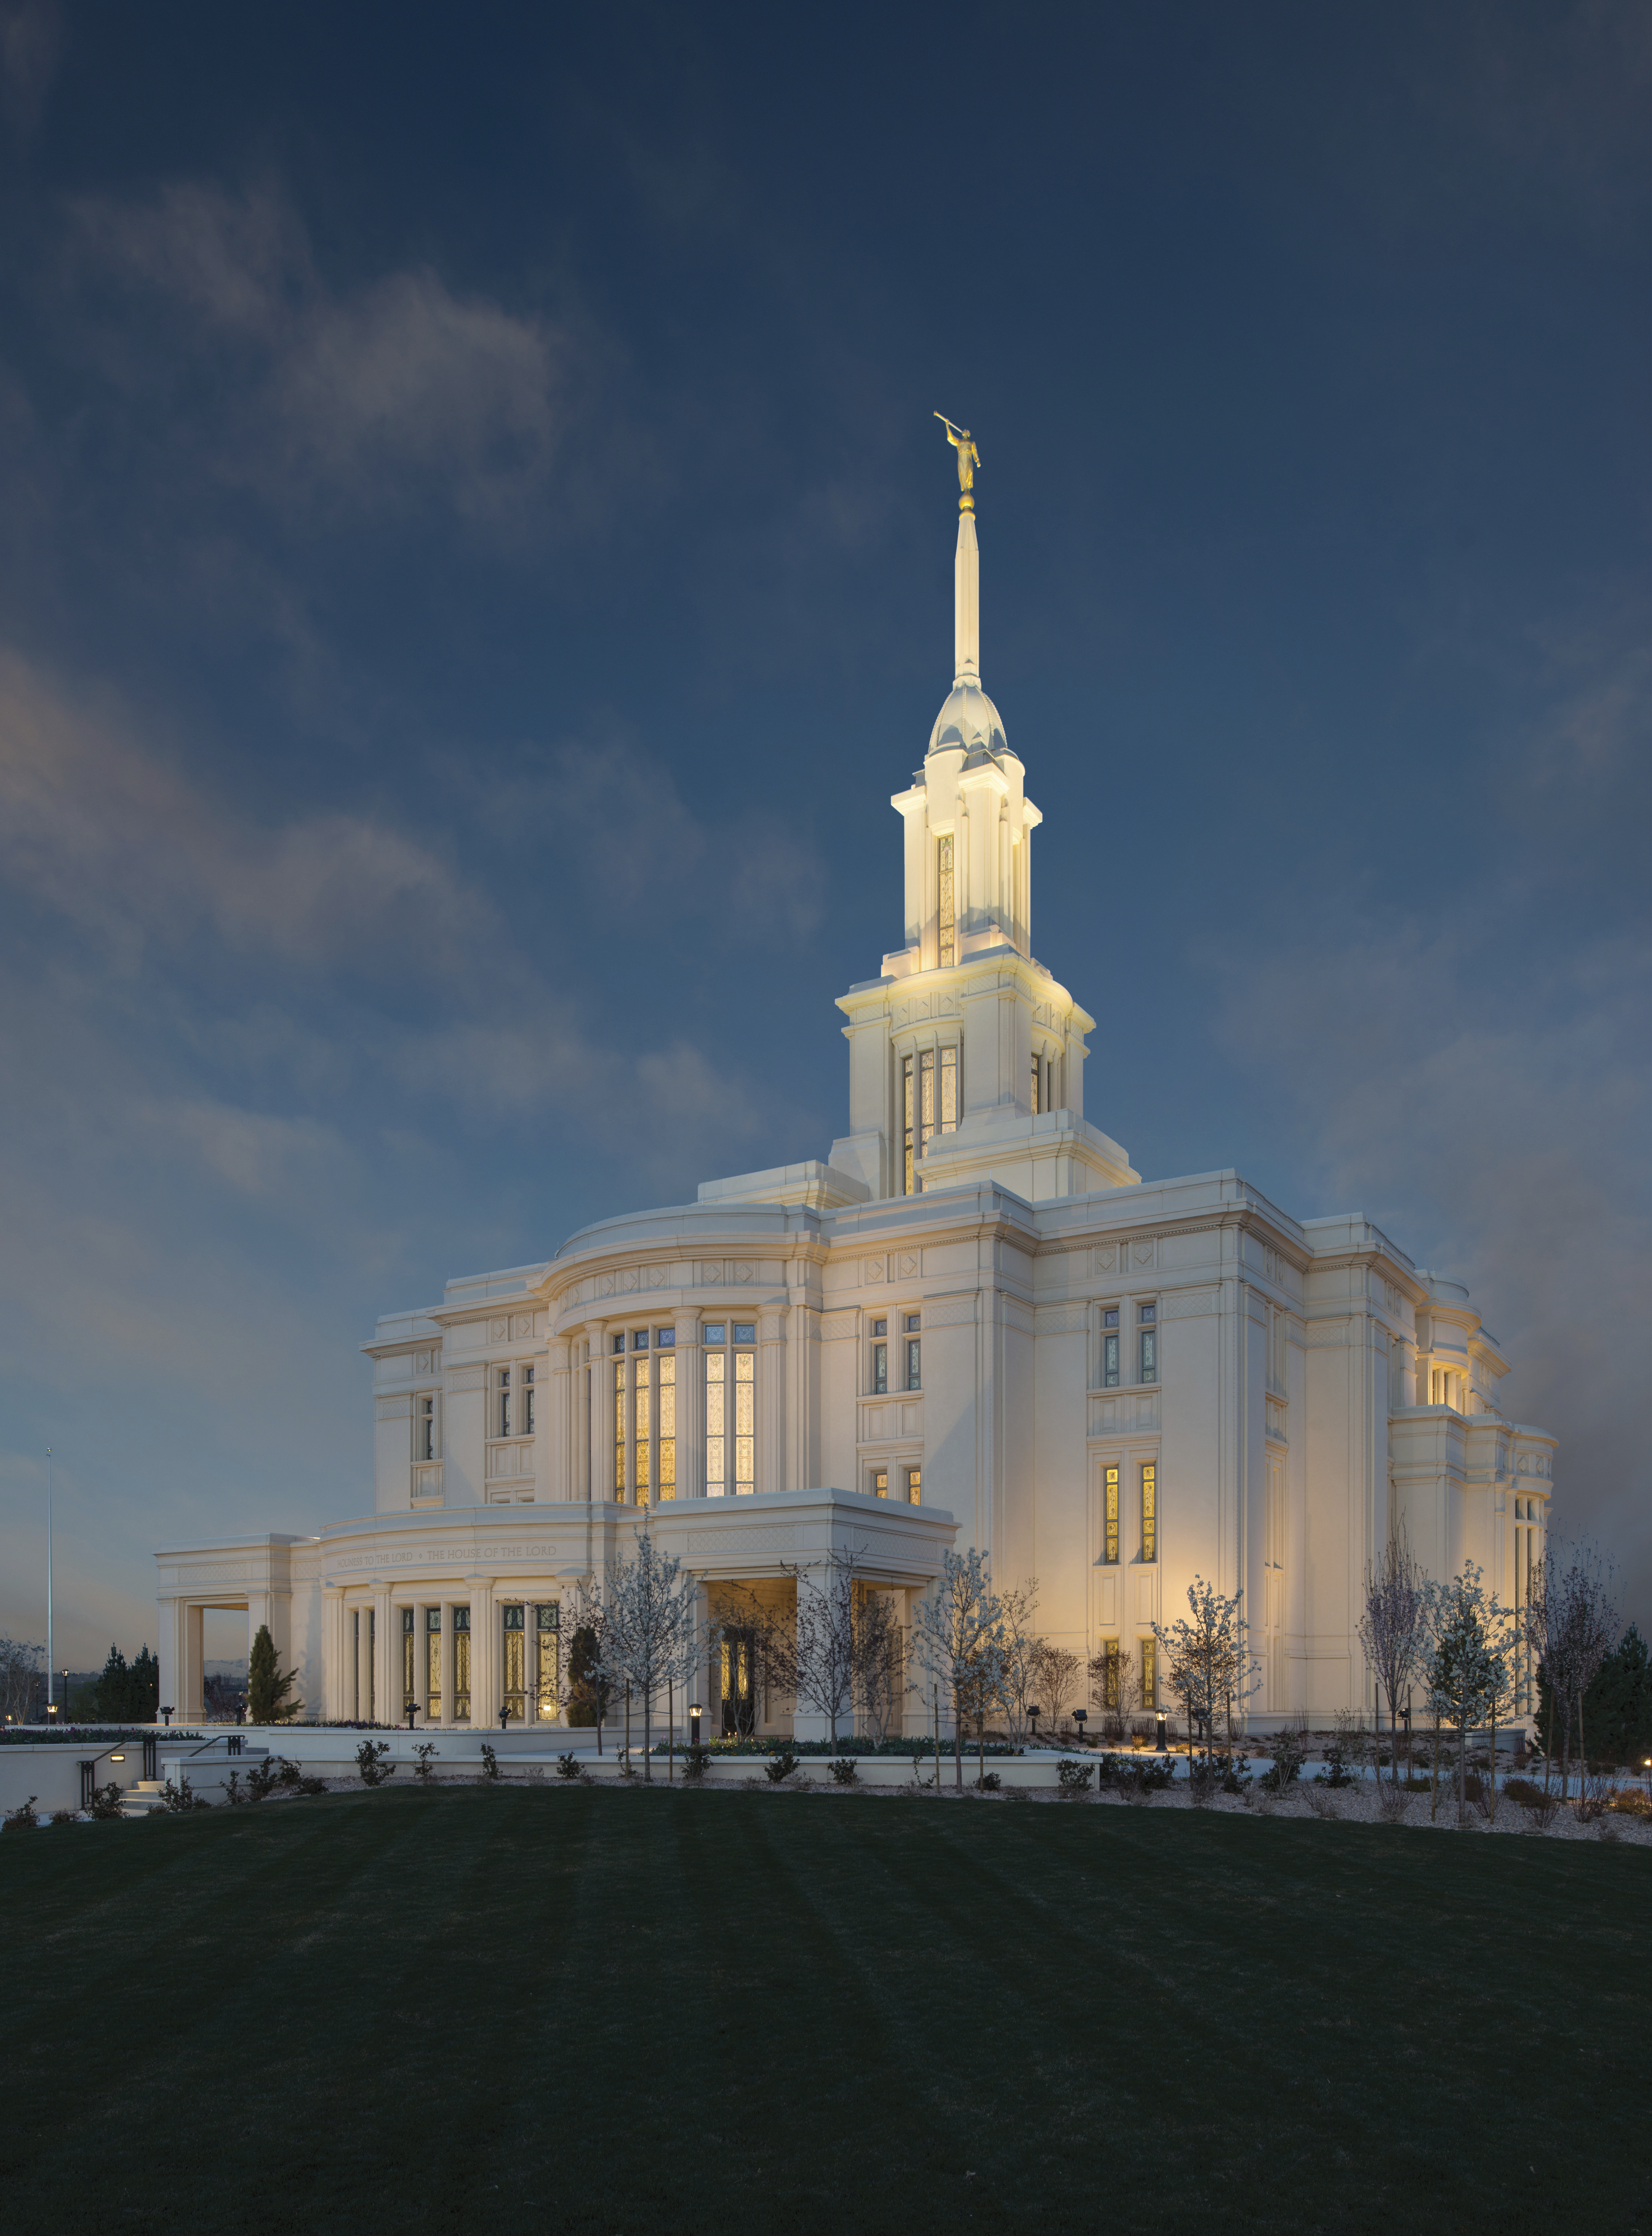 A view of the entire Payson Utah Temple in the evening.